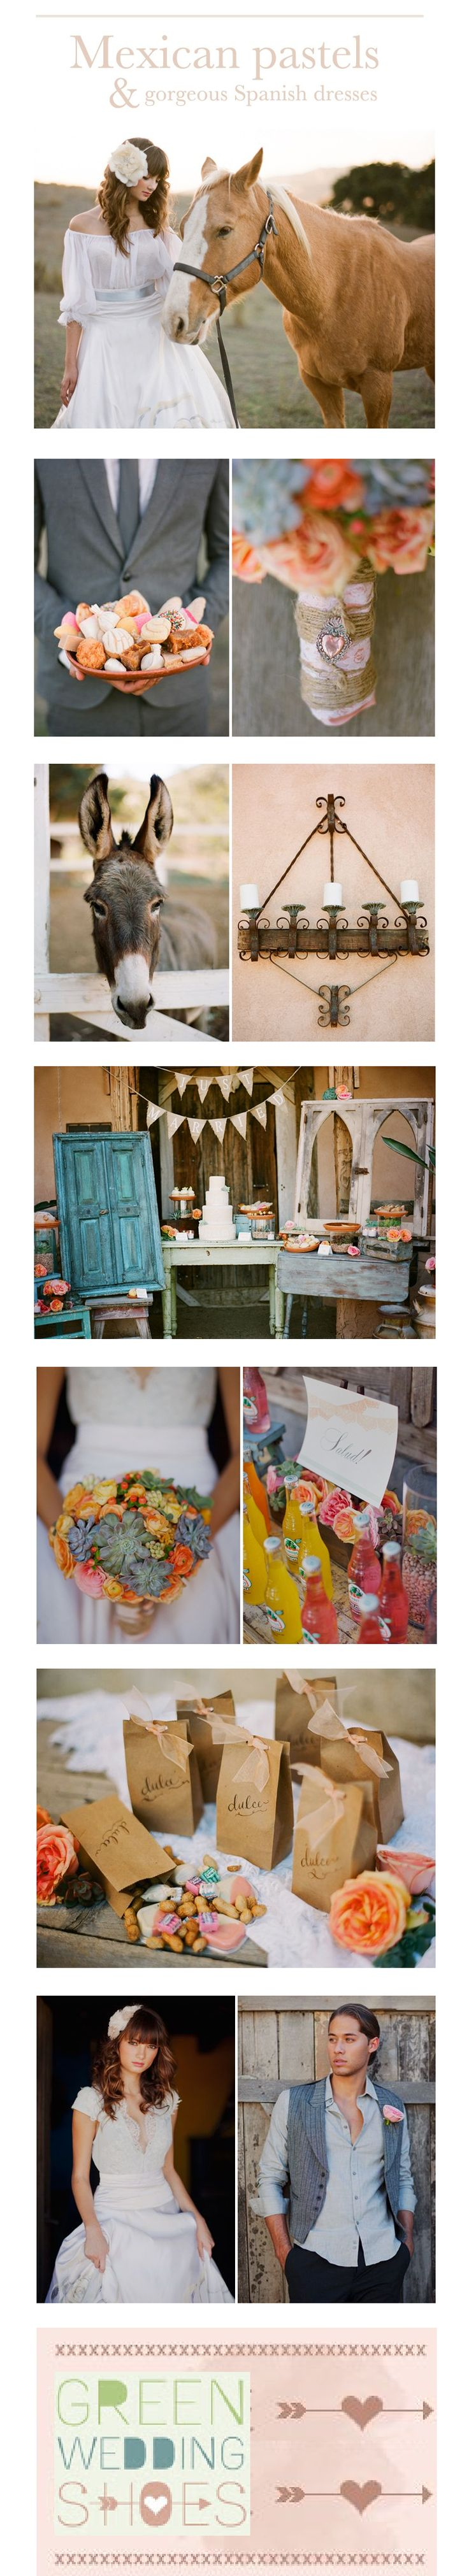 A BEAUTIFUL HISPANIC STYLE WEDDING. SO ELEGANT AND HAS TEX MEX, SPANISH, COUNTRY AND MEXICAN TOUCHES.